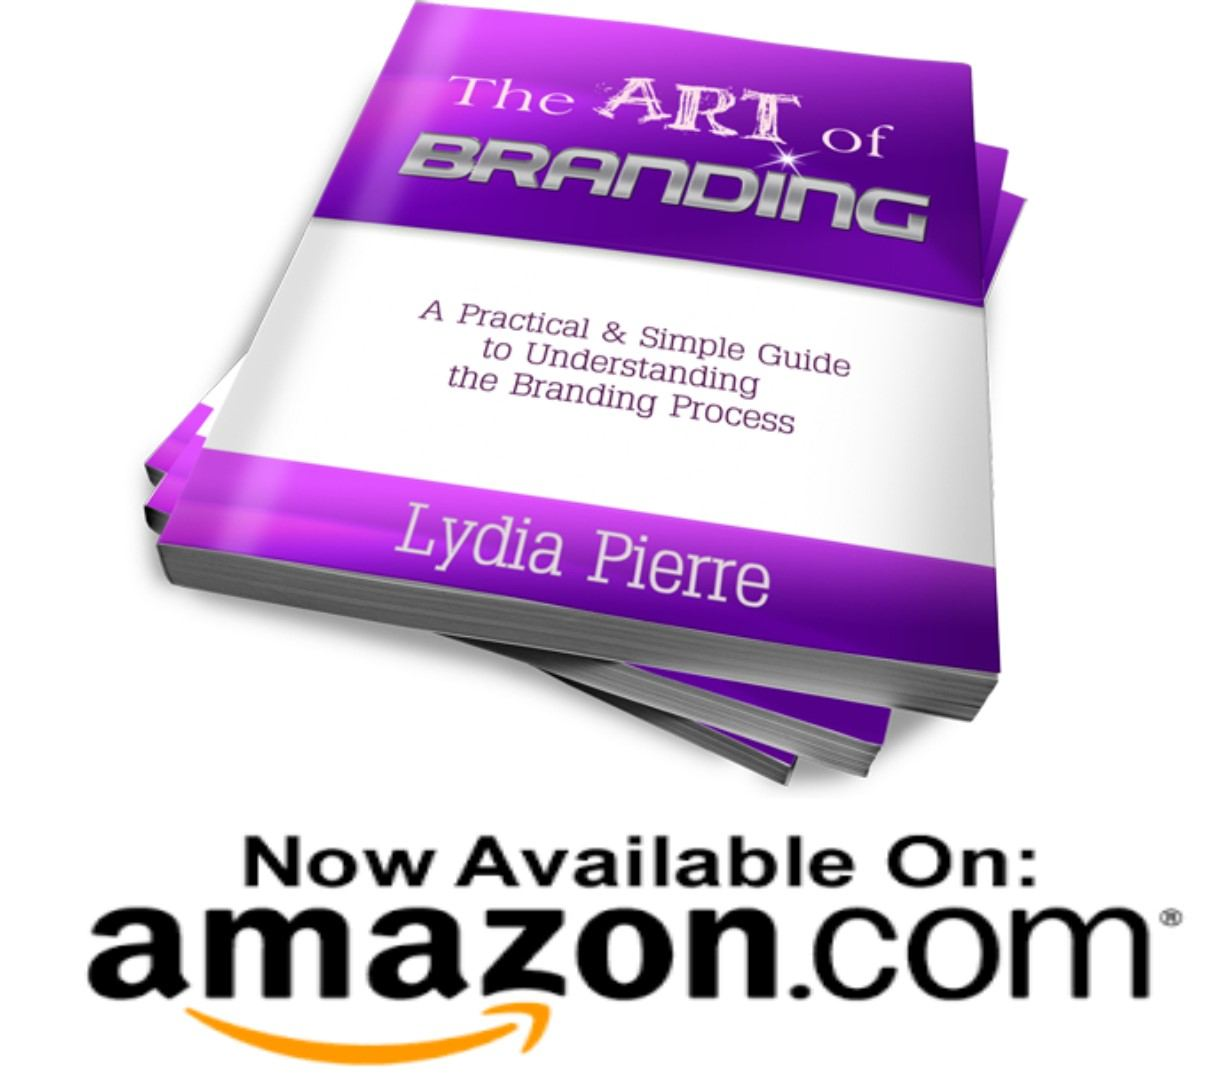 The Art of Branding Available Now